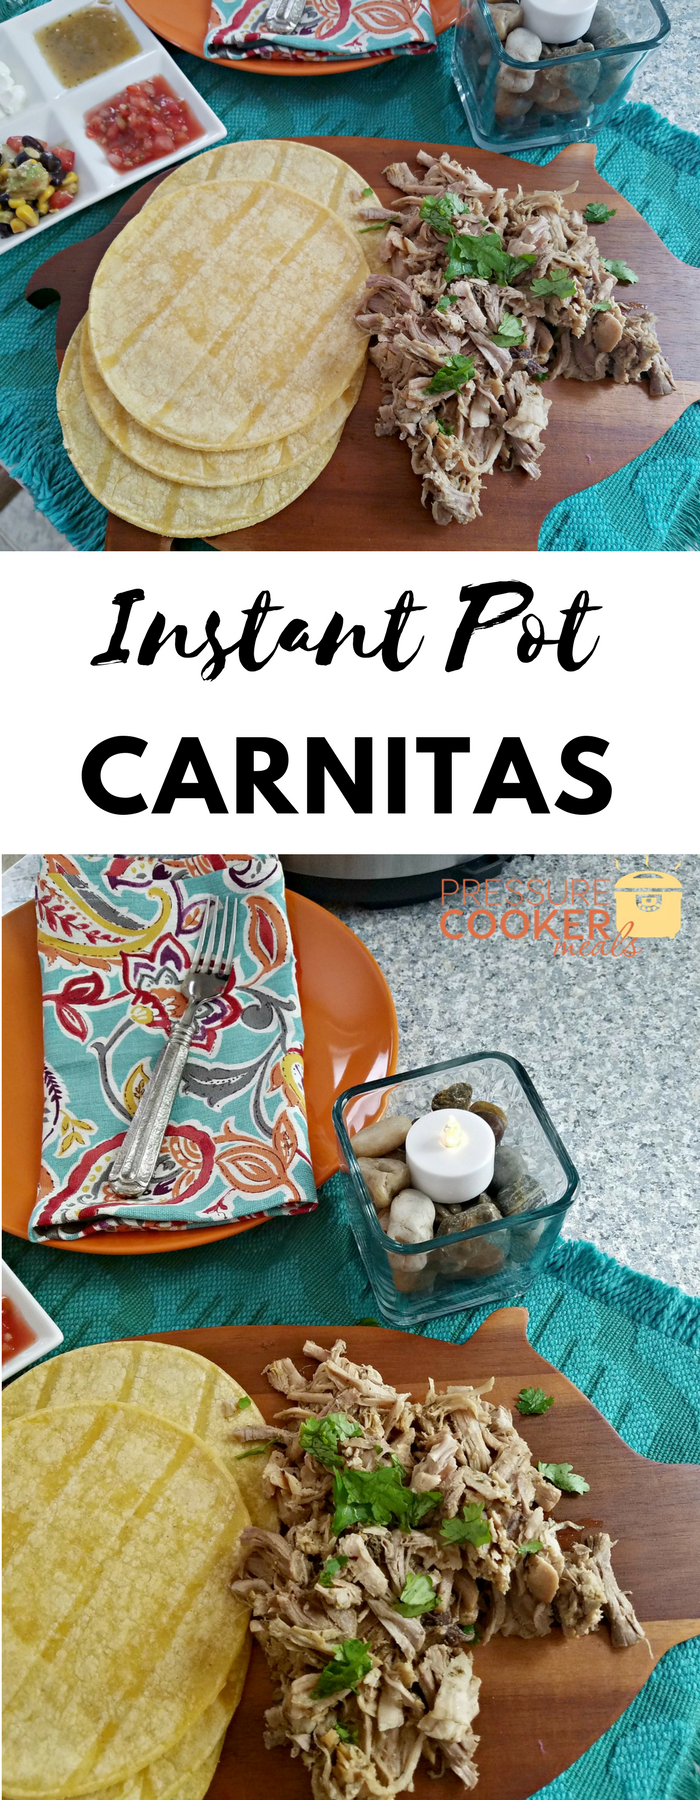 Instant Pot Carnitas are mouthwatering and easy! This Instant Pot Recipe is a great way to use a pork roast easily without turning on your oven! A fun Mexican inspired dish the whole family loves!